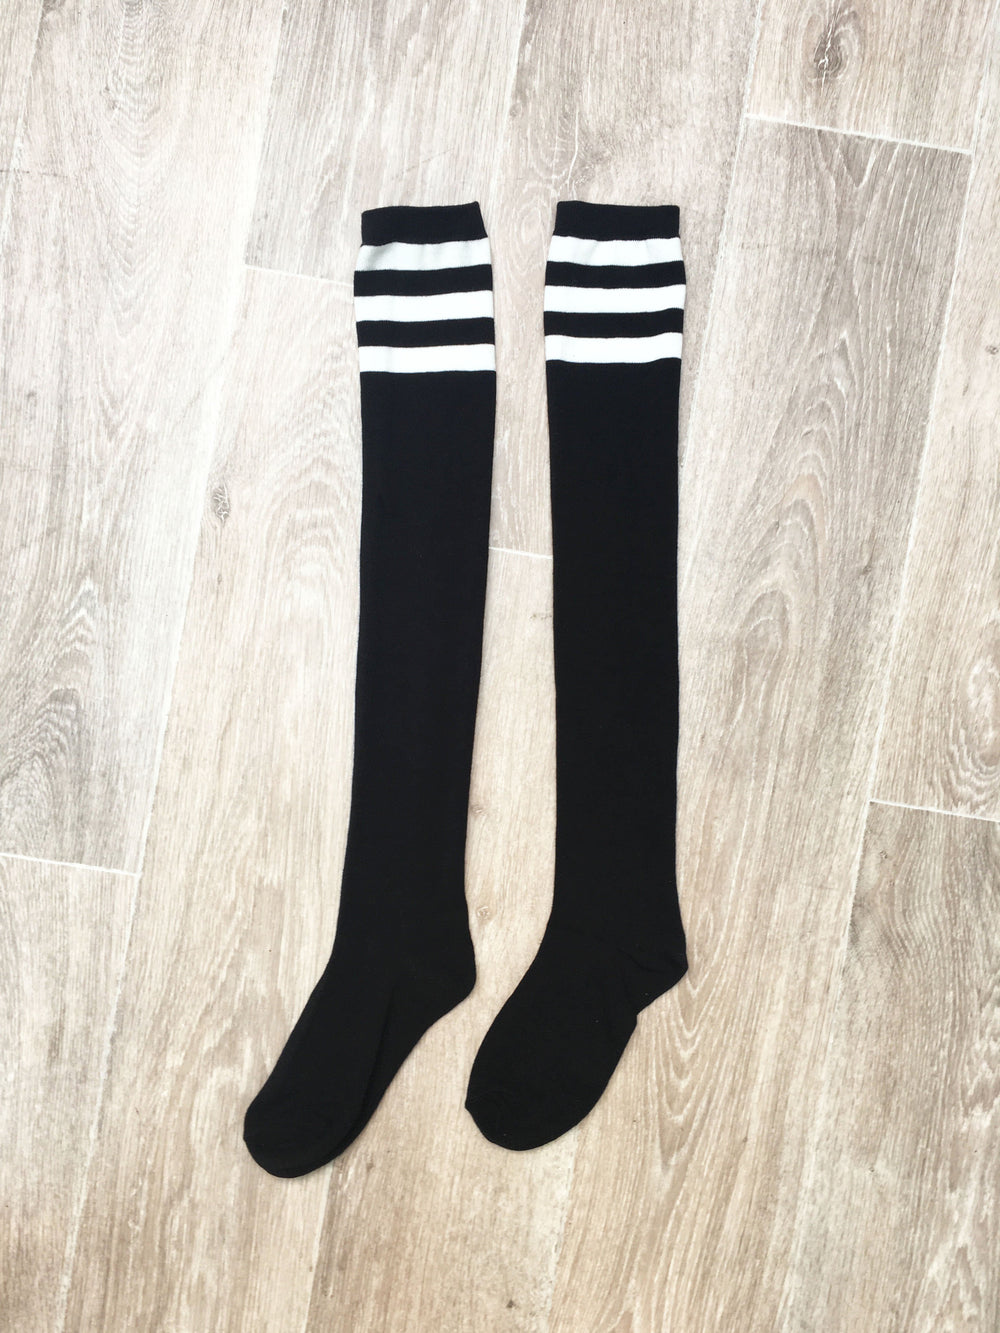 Thigh High Socks - Black with White Stripes